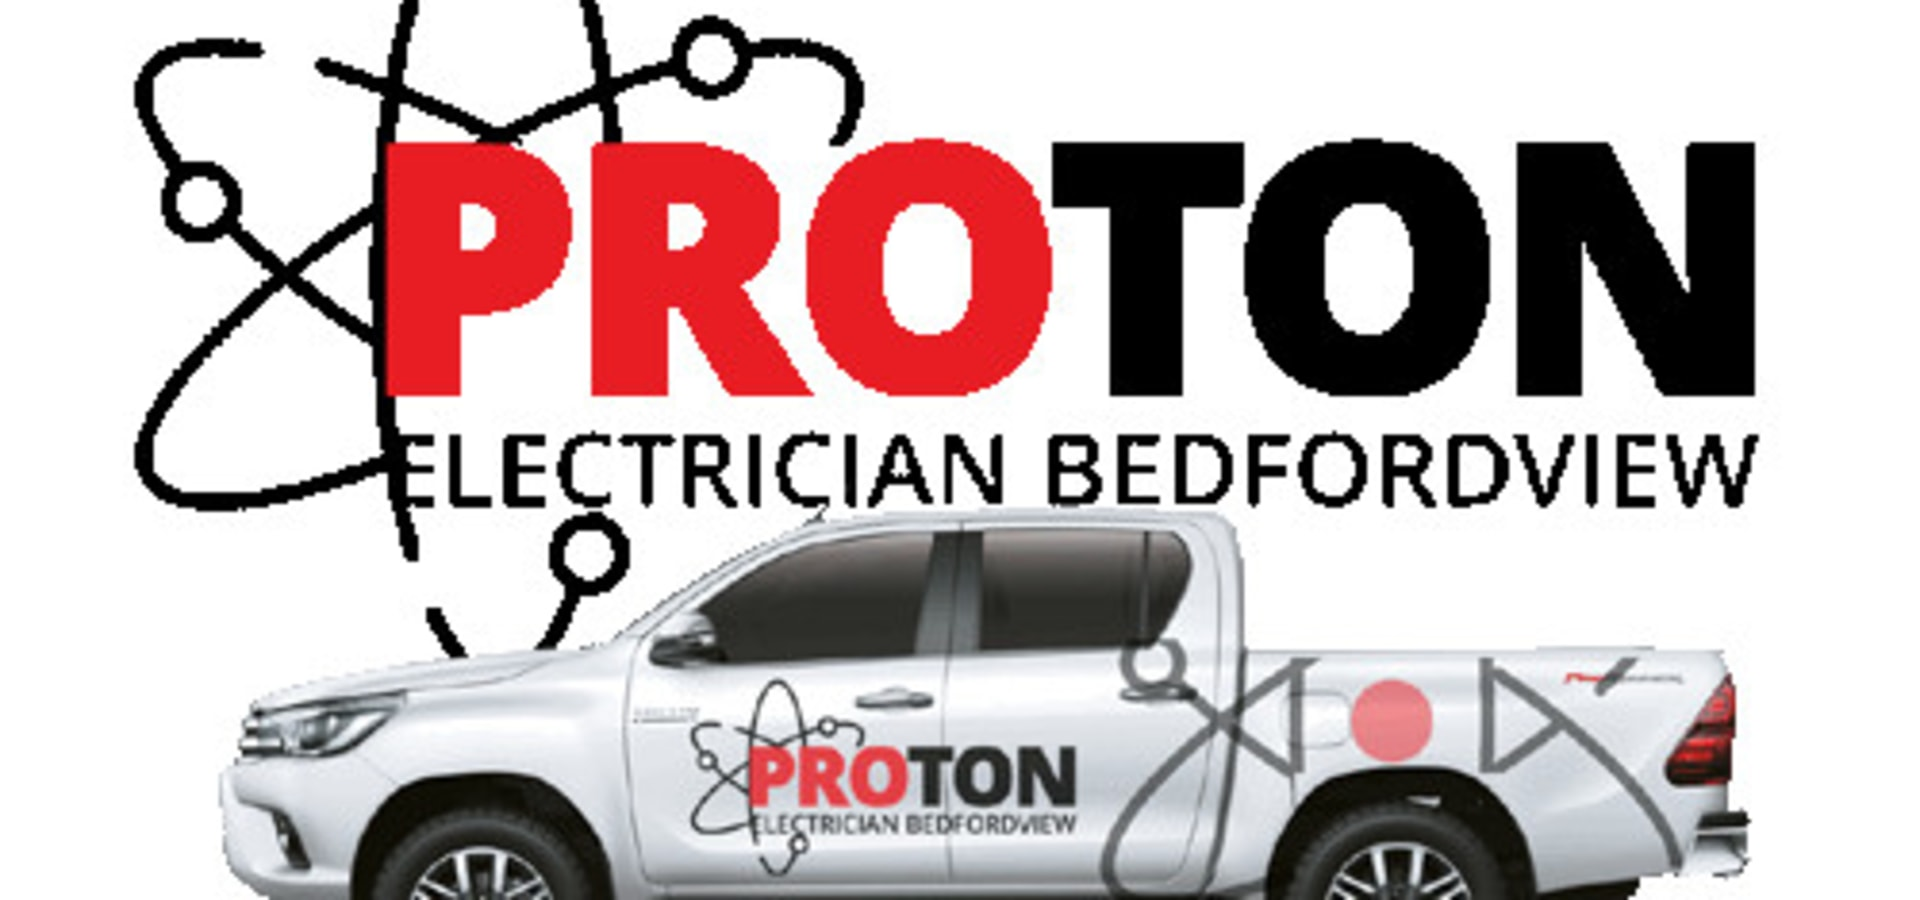 Electrician Bedfordview